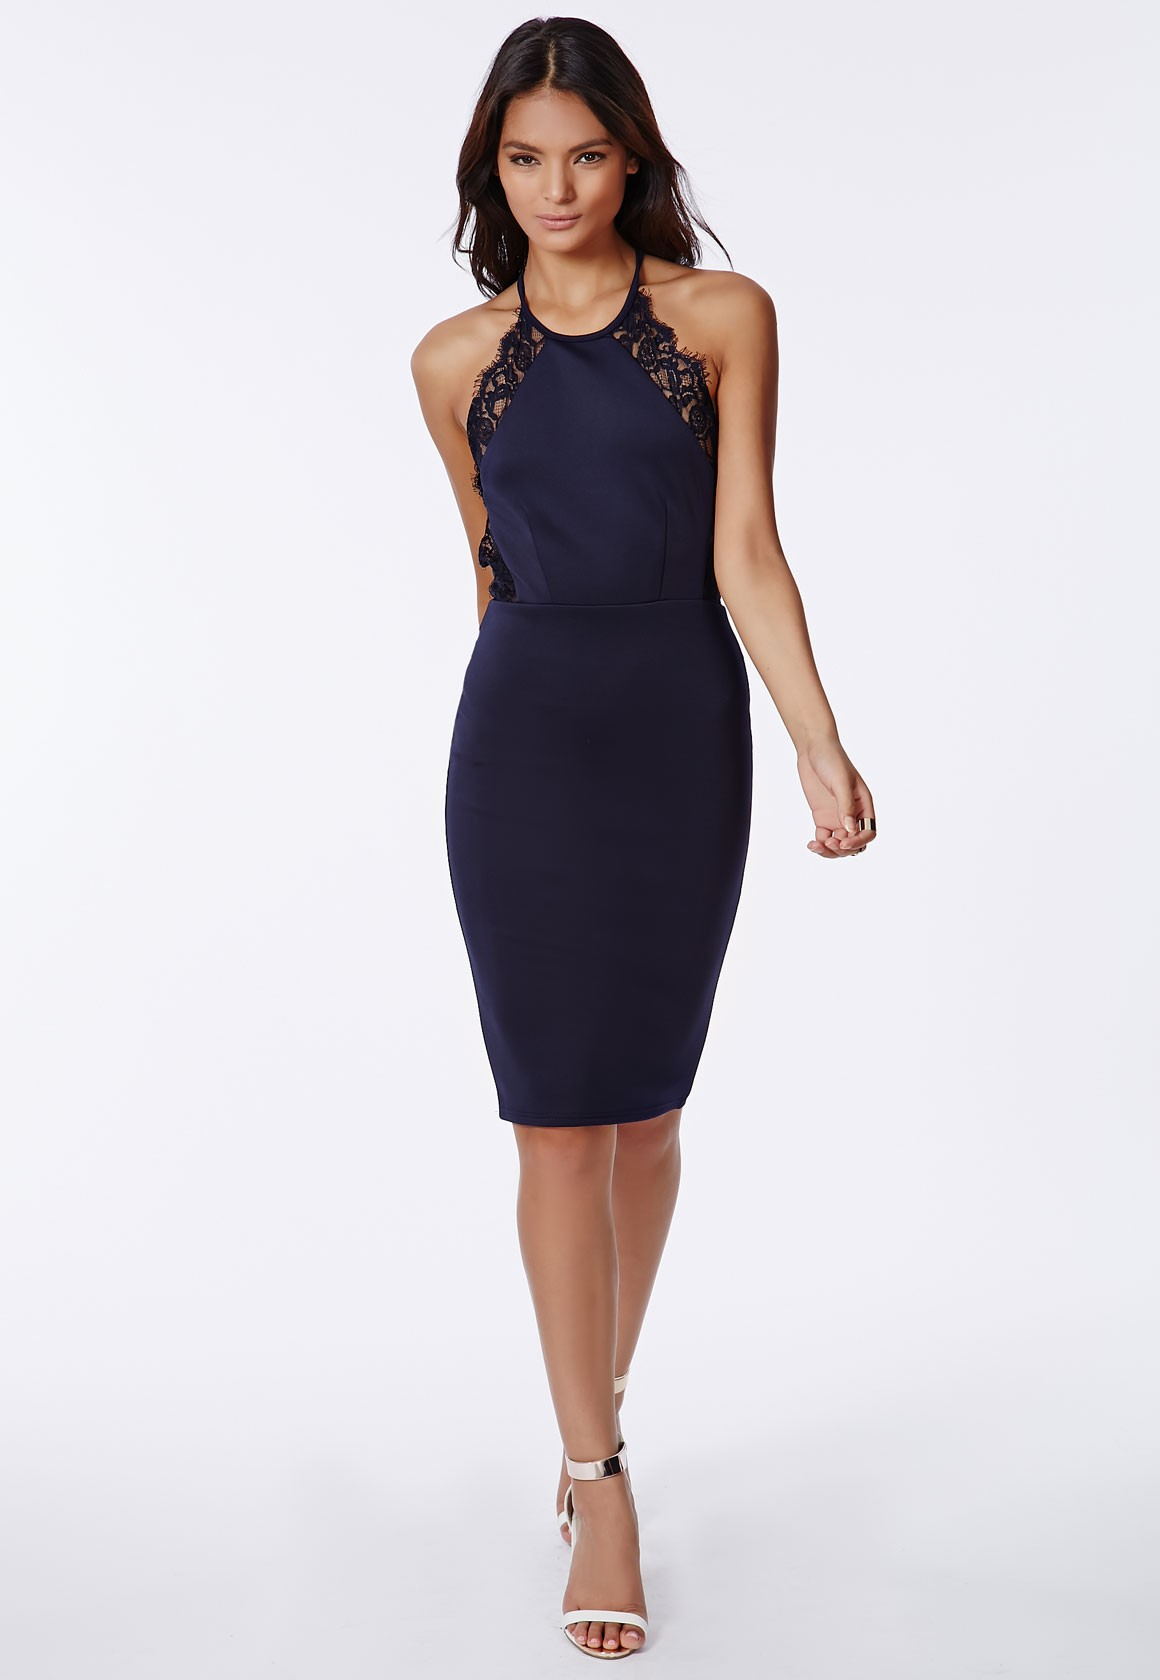 Missguided Halter Dress